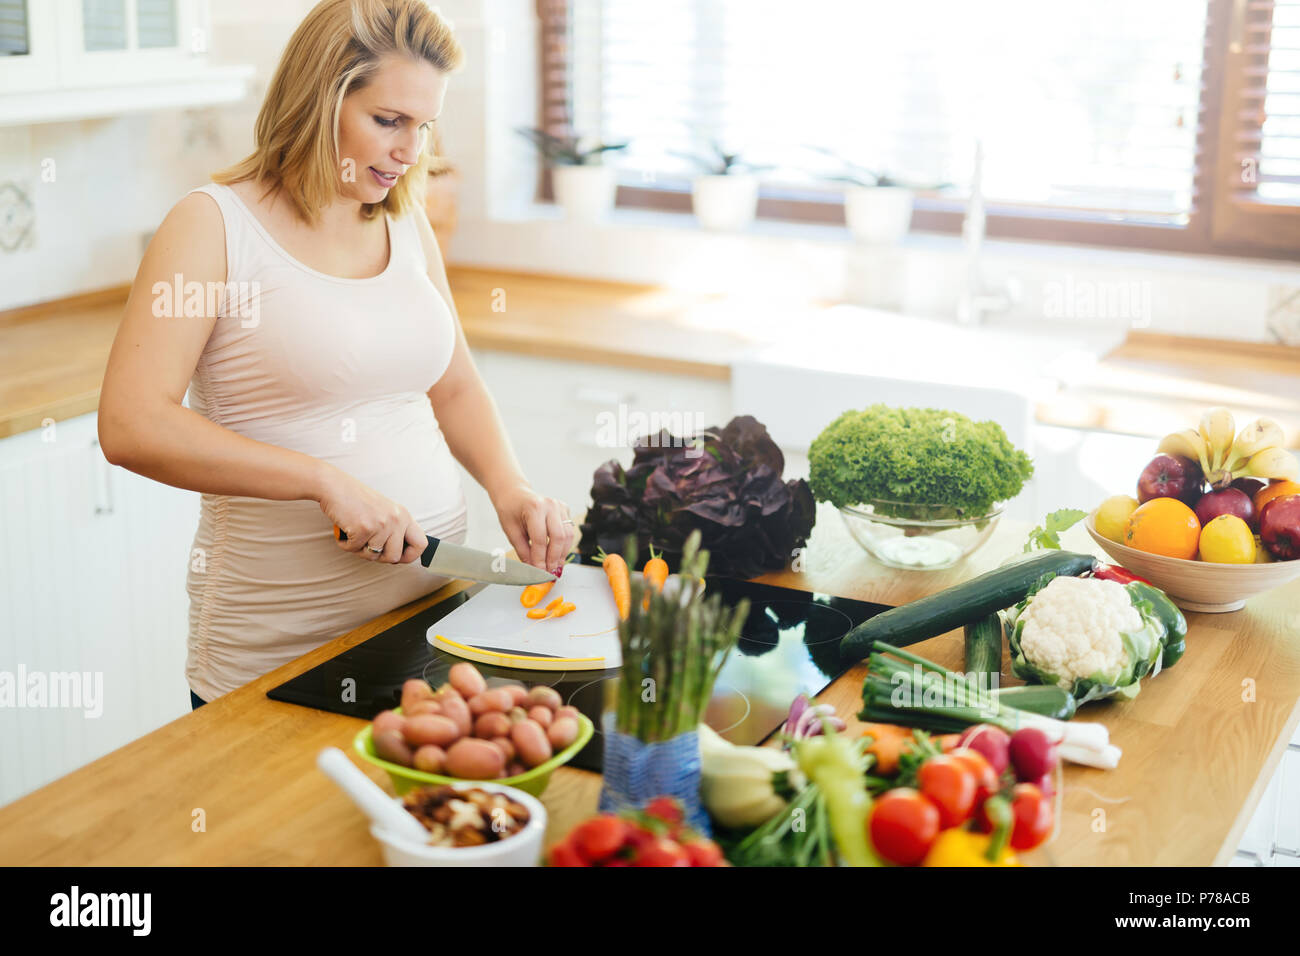 Donna incinta mangiare sano Foto Stock